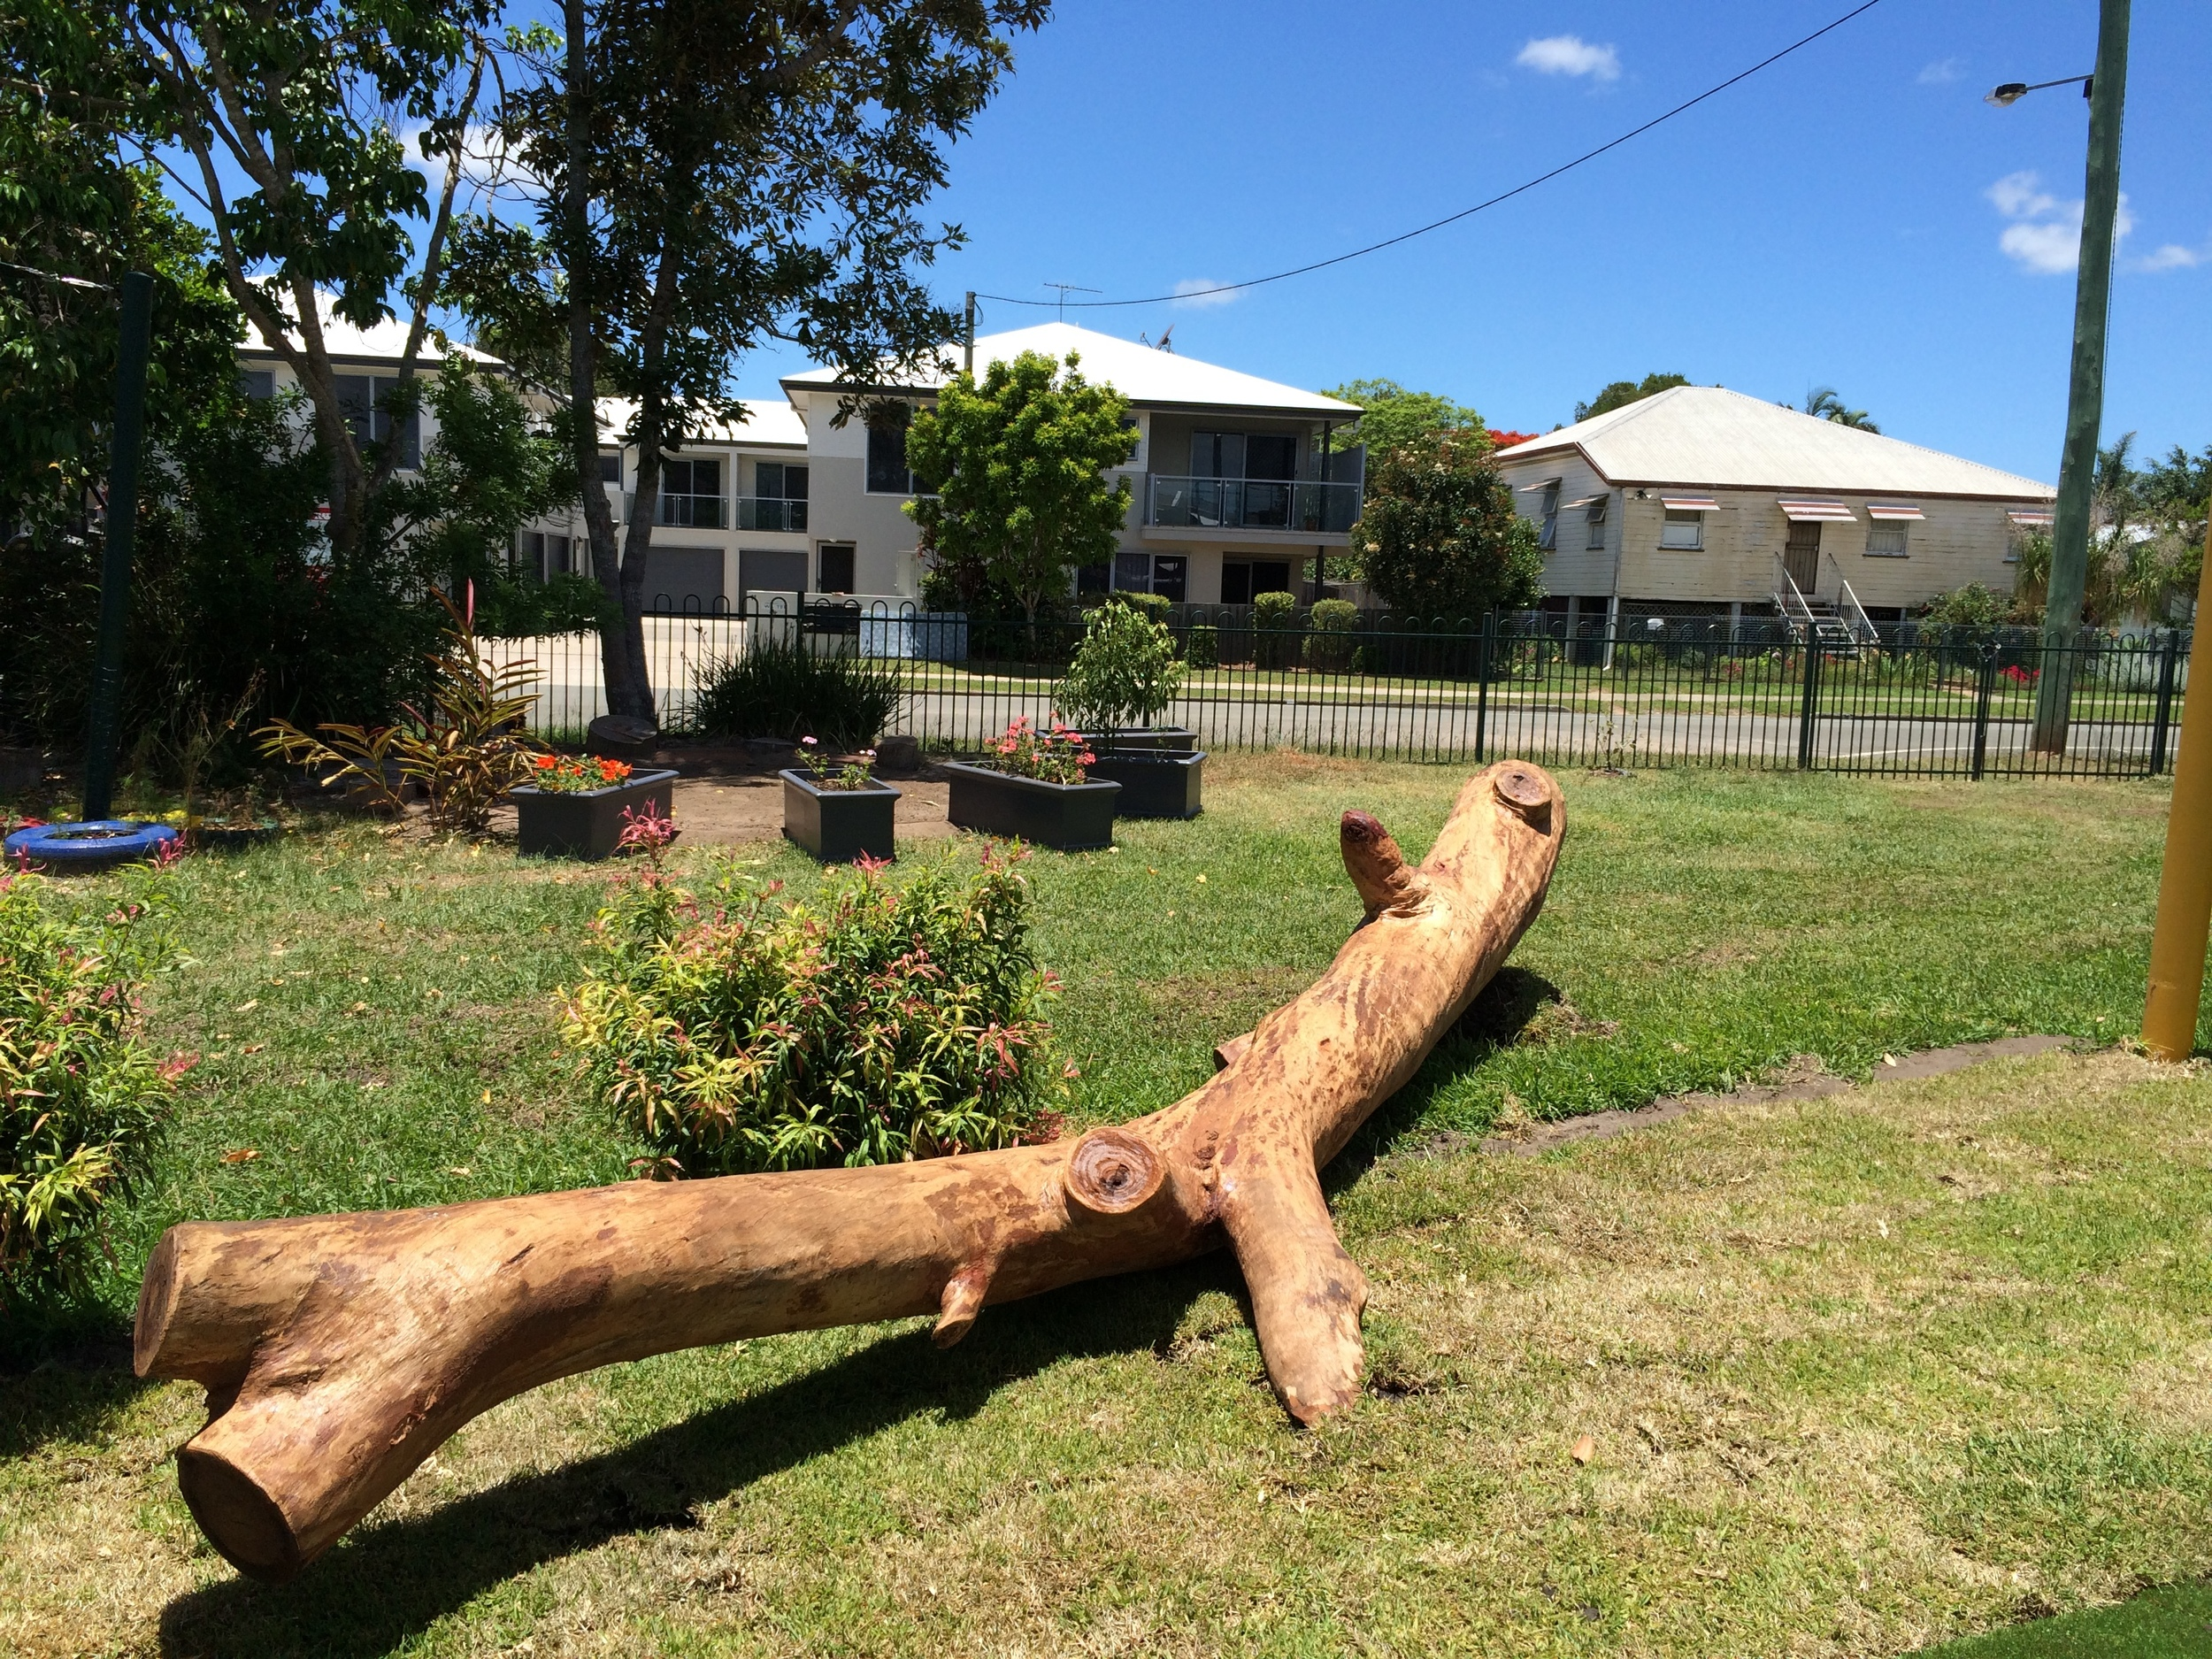 Natural Log Balance Climb was a must have in this Kindy